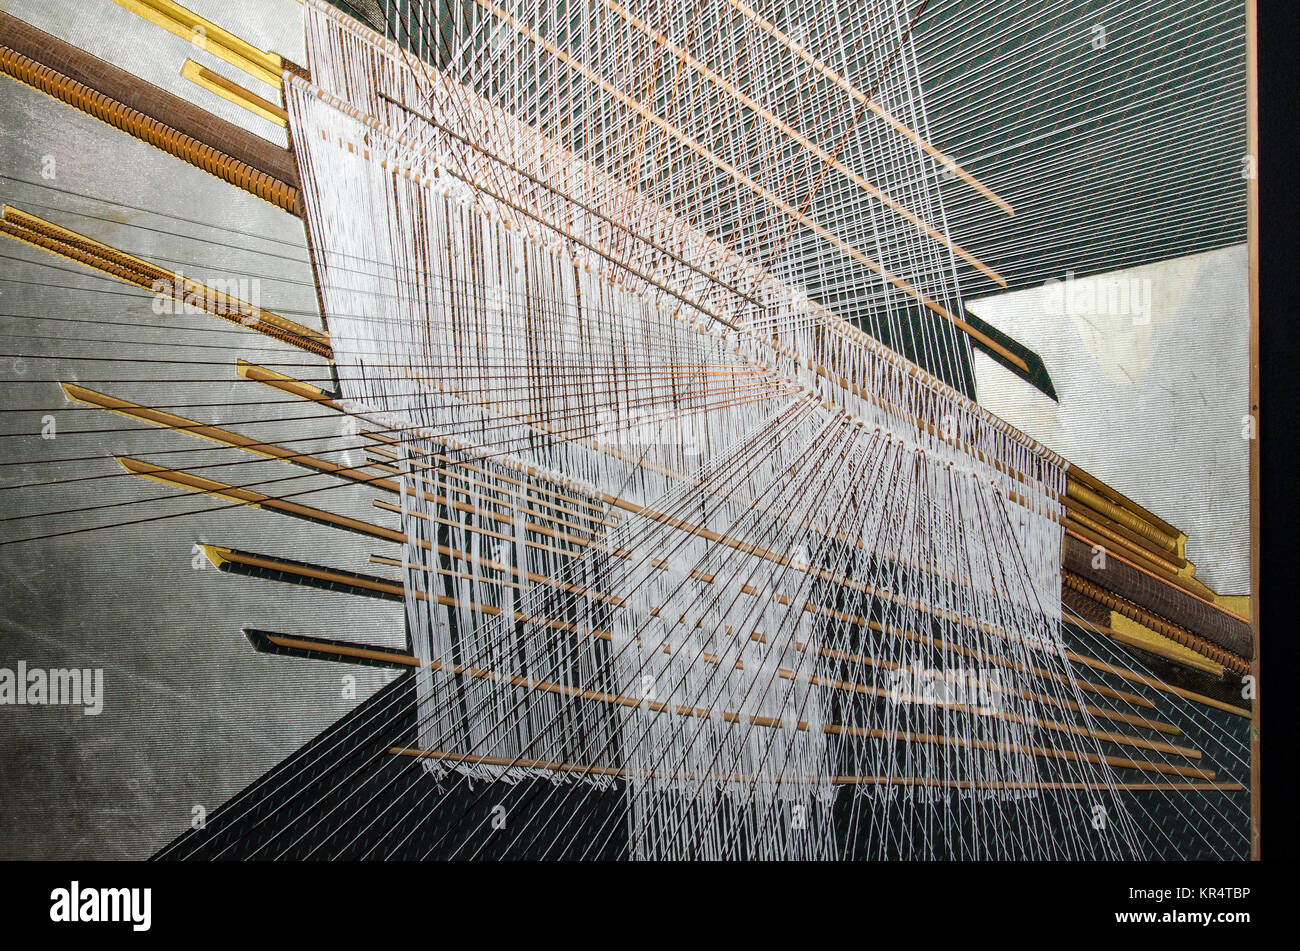 Silk fabric, hand weaving process in Thailand - Stock Image